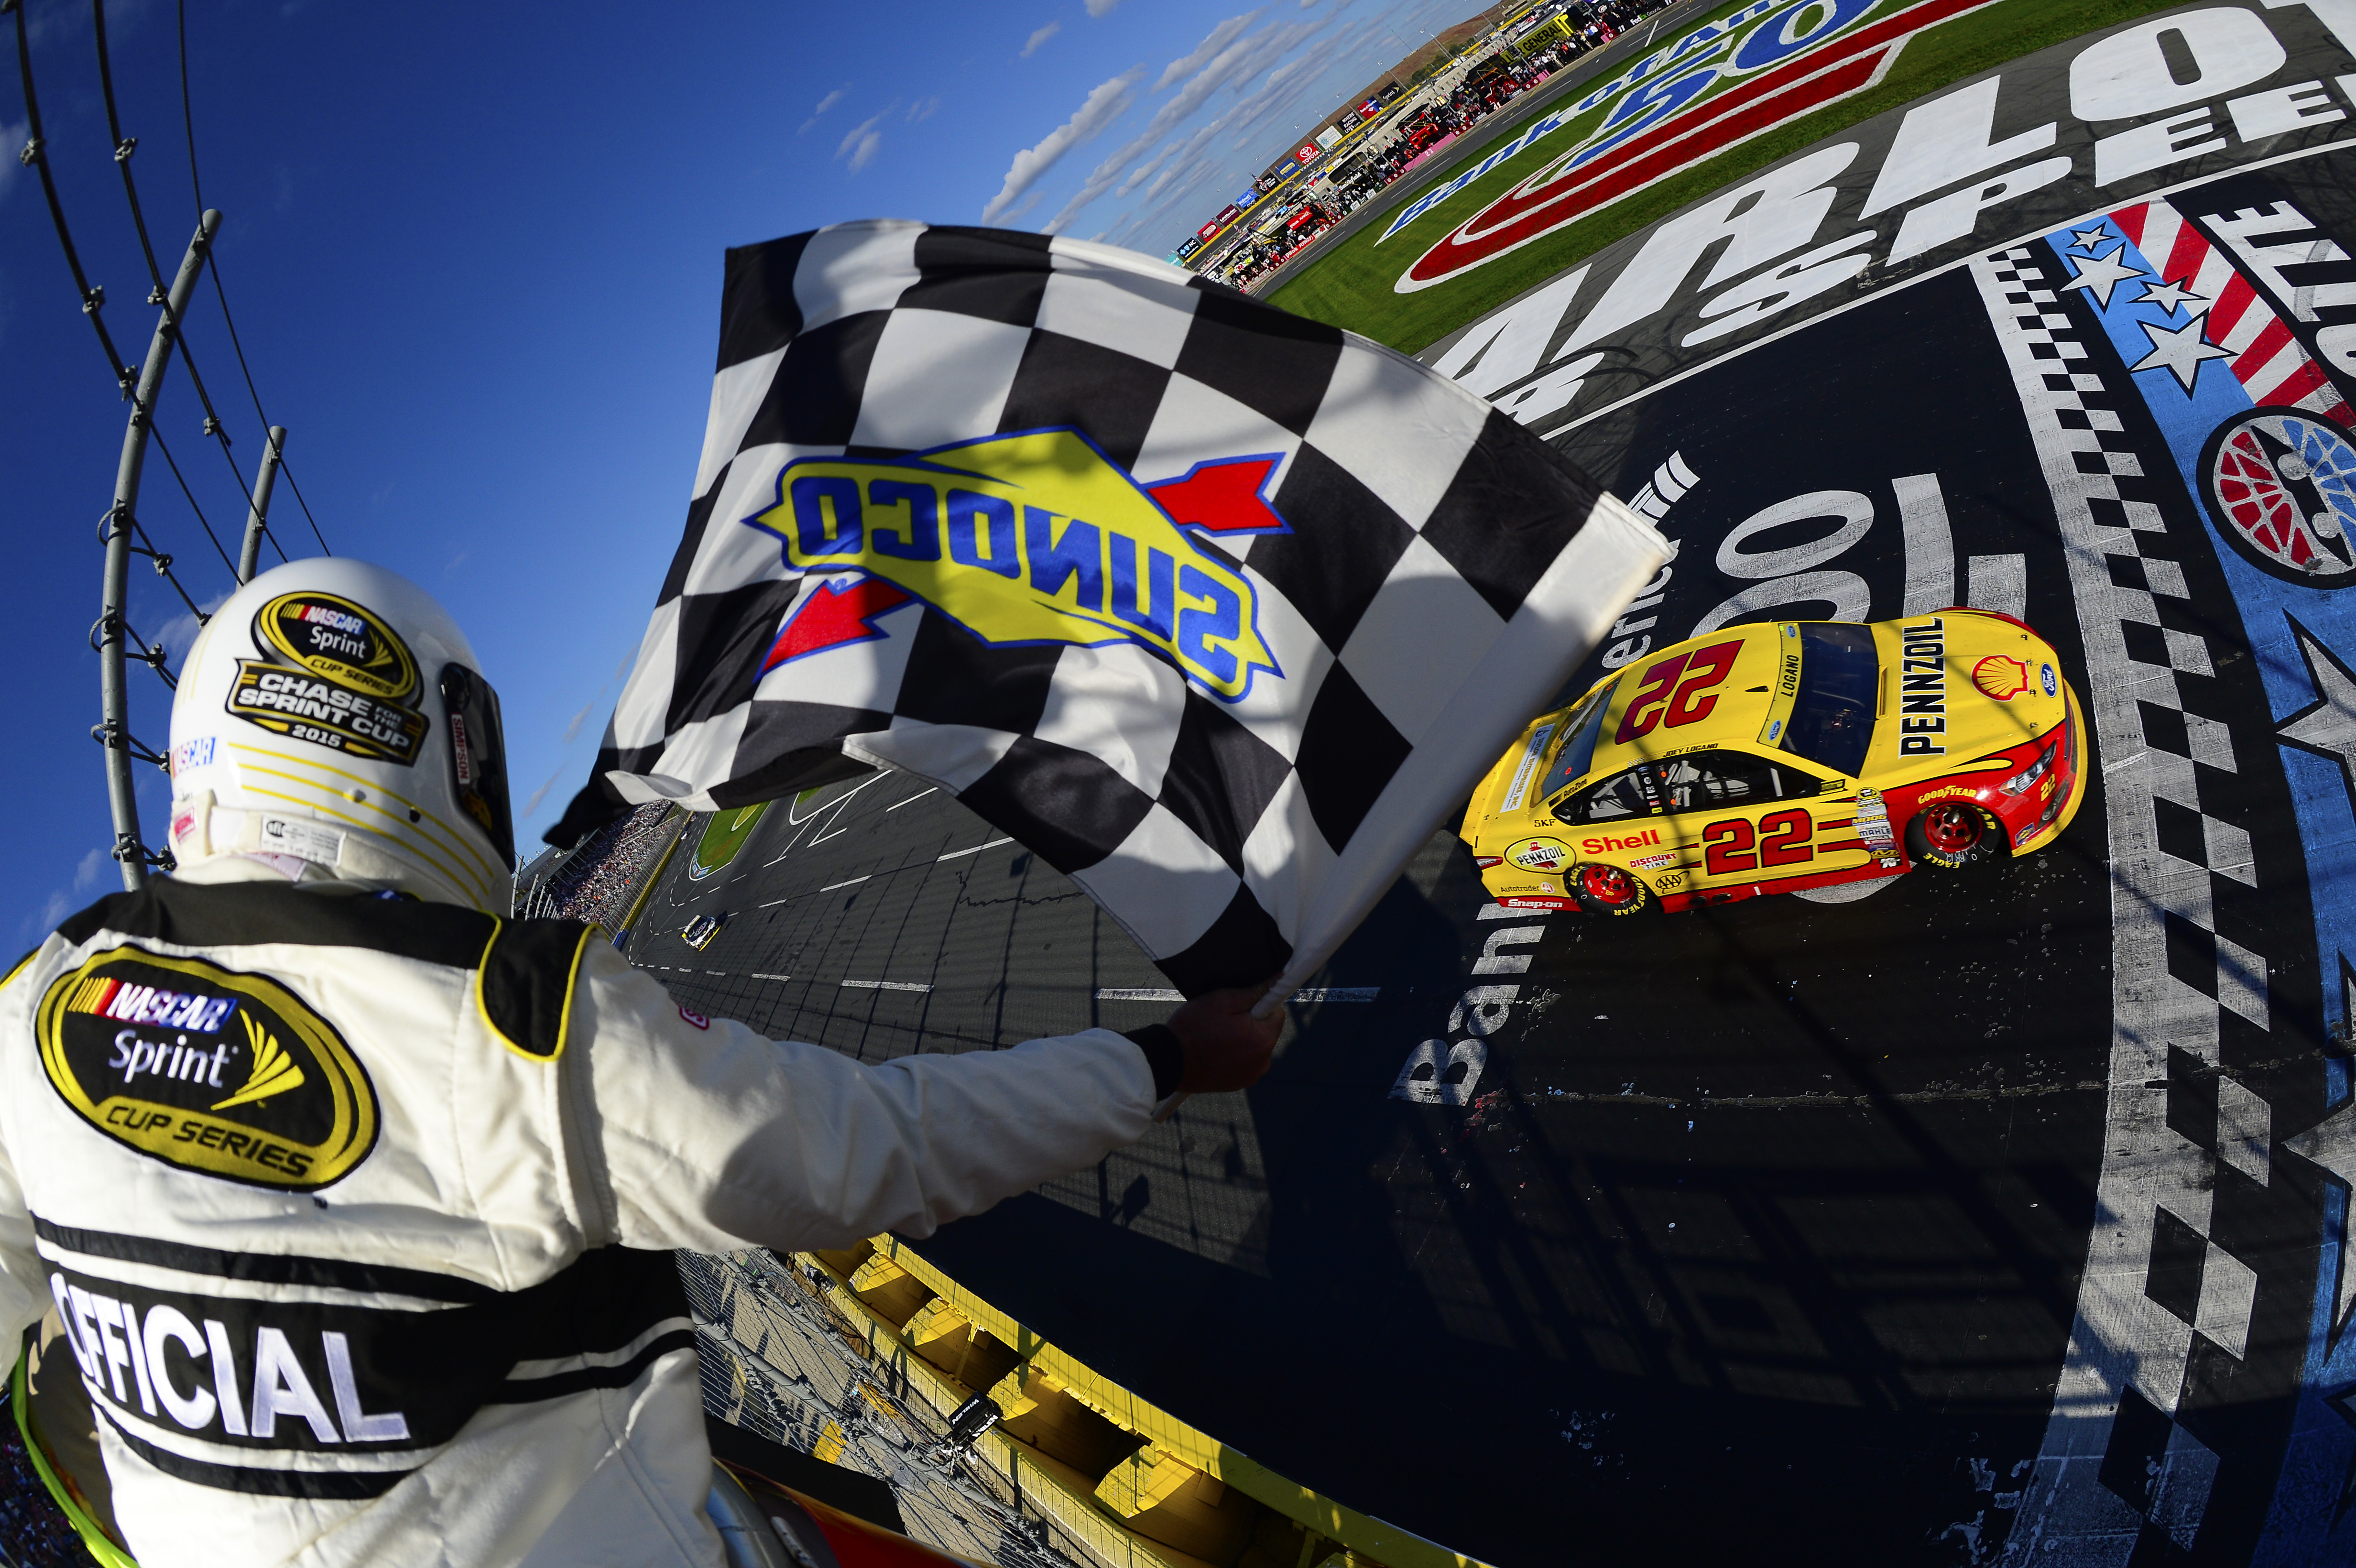 CHARLOTTE, NC - OCTOBER 11:  Joey Logano, driver of the #22 Shell Pennzoil Ford, races to the checkered flag to win the NASCAR Sprint Cup Series Bank of America 500 at Charlotte Motor Speedway on October 11, 2015 in Charlotte, North Carolina.  (Photo by Robert Laberge/NASCAR via Getty Images)